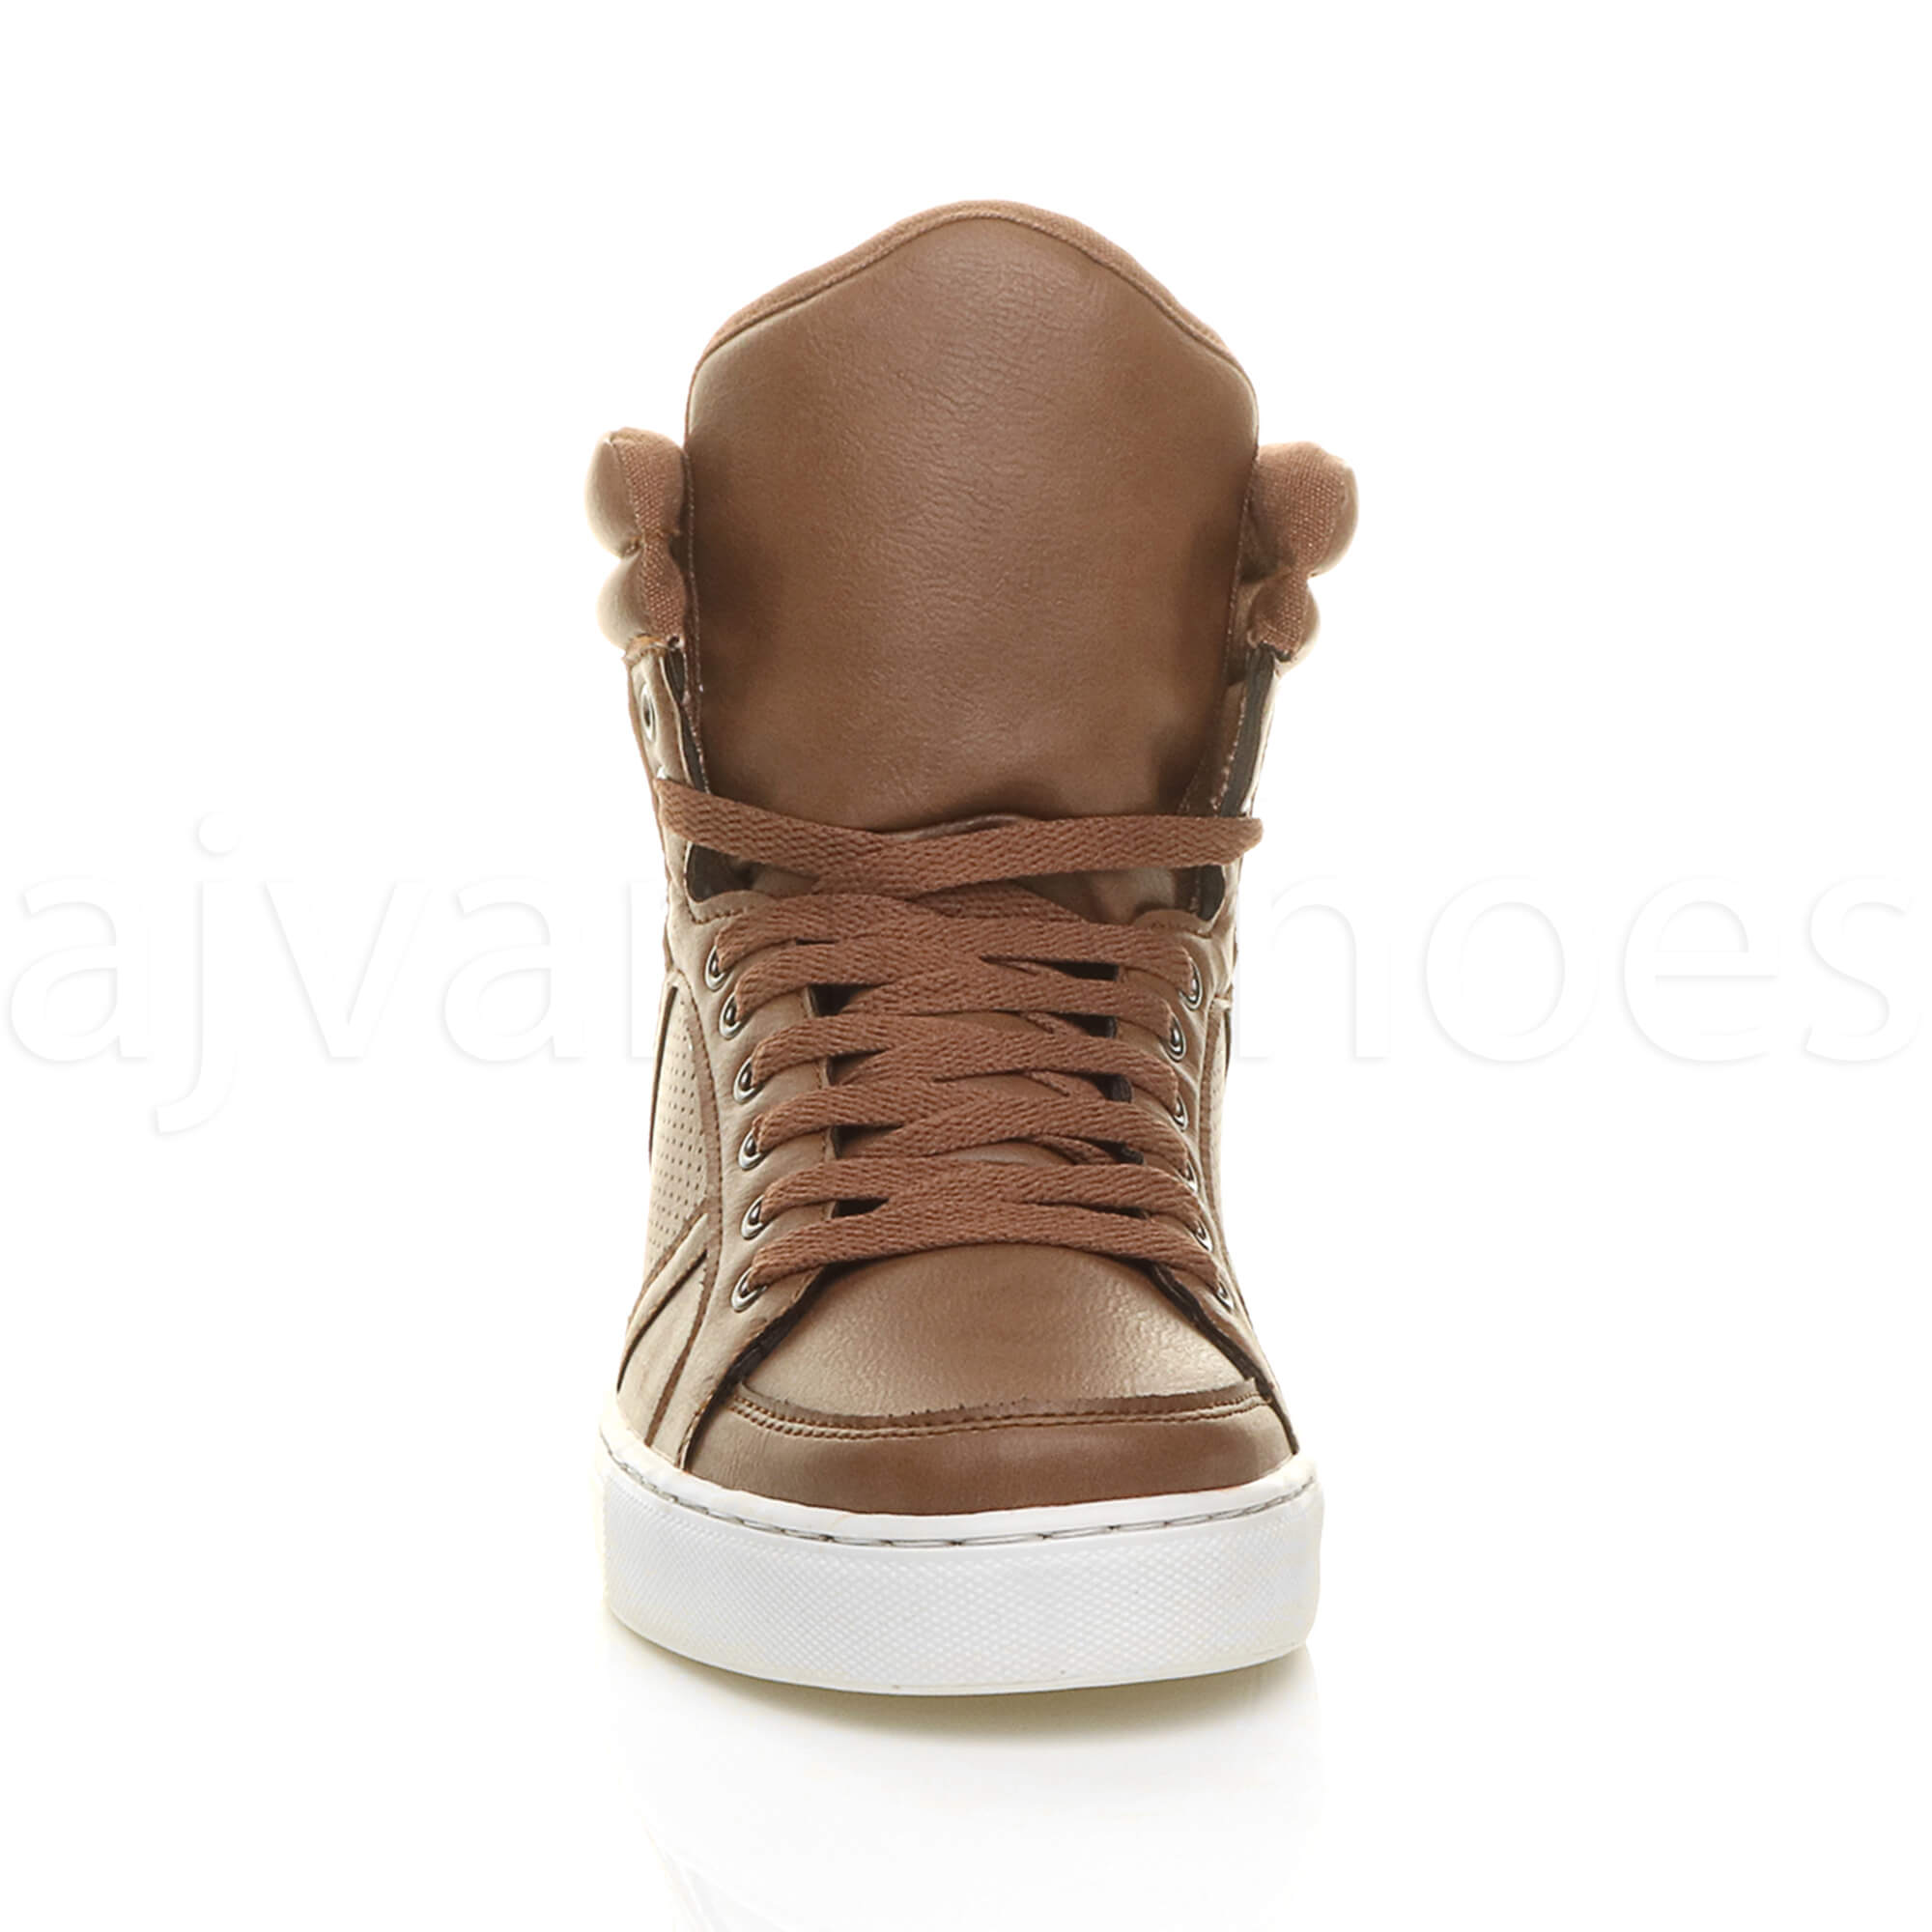 MENS-LACE-UP-CASUAL-FLAT-HI-HIGH-TOP-ANKLE-BOOTS-SHOES-TRAINERS-SNEAKERS-SIZE thumbnail 28